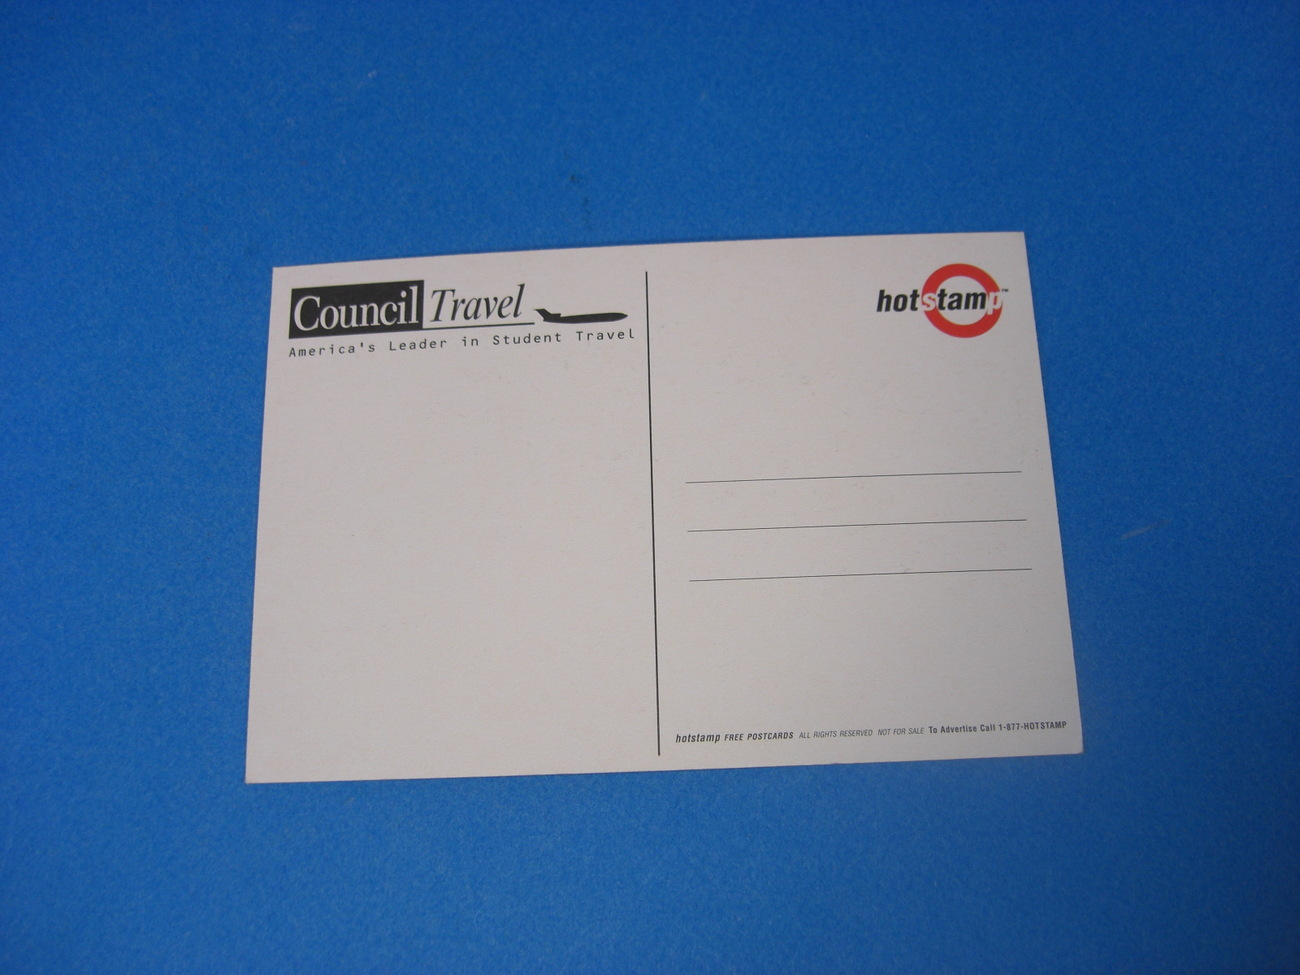 Council Travel Hot Stamp Postcard